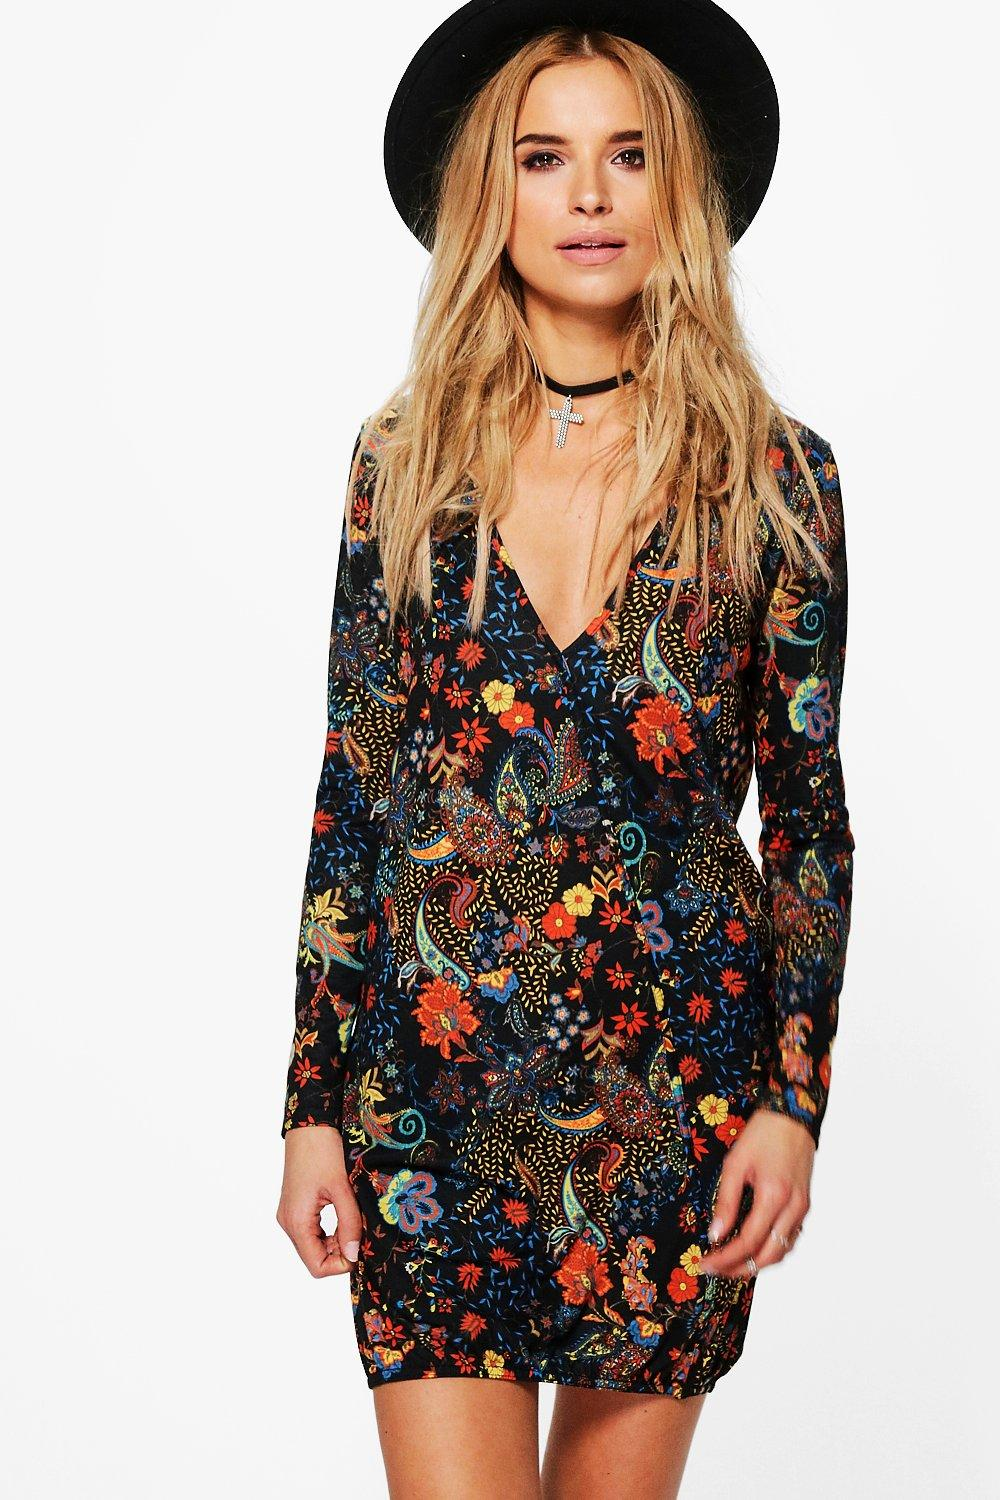 boohoo dillon robe chemise cache c ur motif cachemire pour femme ebay. Black Bedroom Furniture Sets. Home Design Ideas